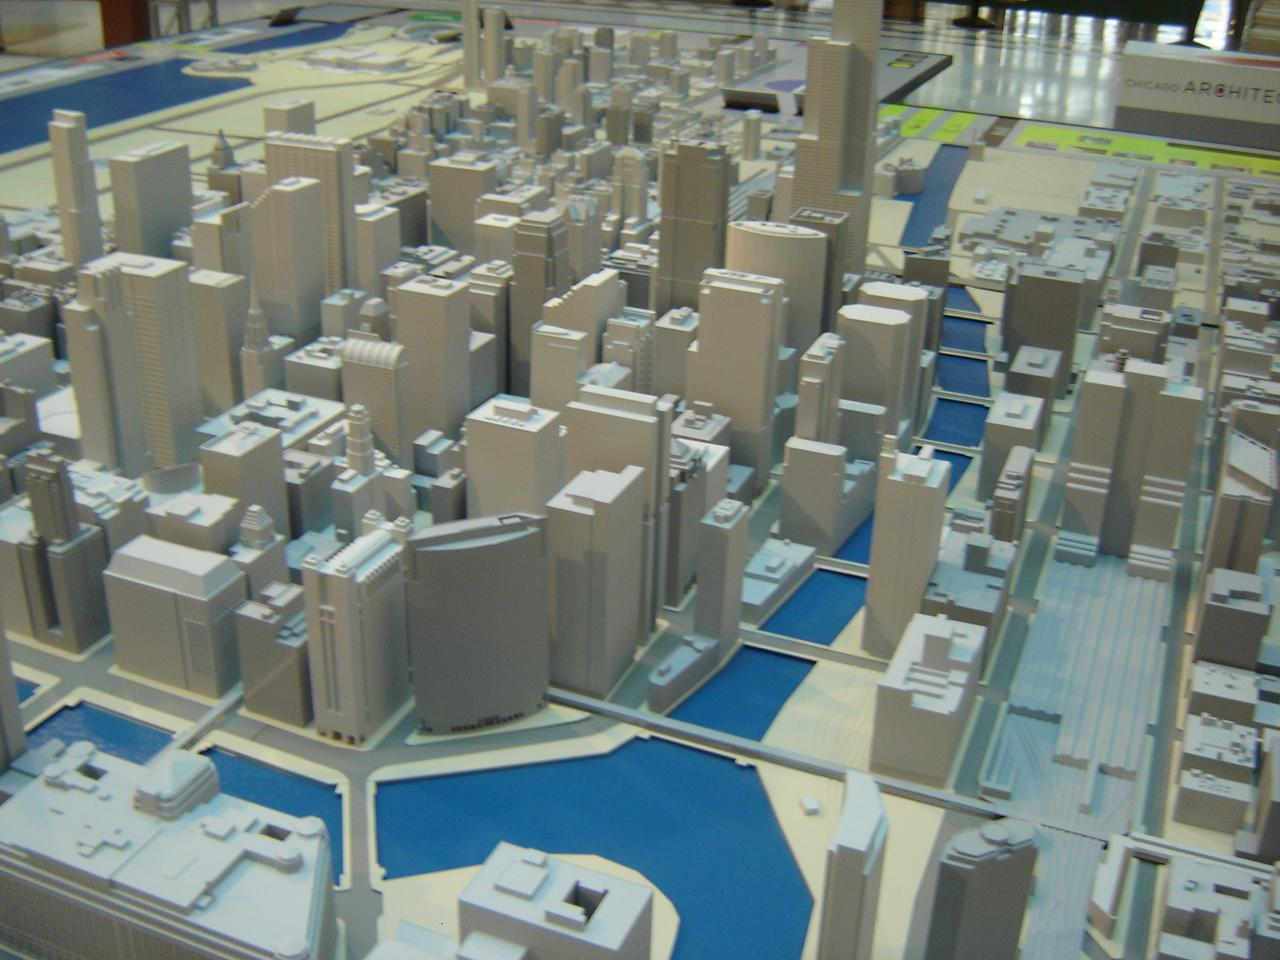 Pictures Of Toy Models Of Cities : A model city the burnham plan centennial